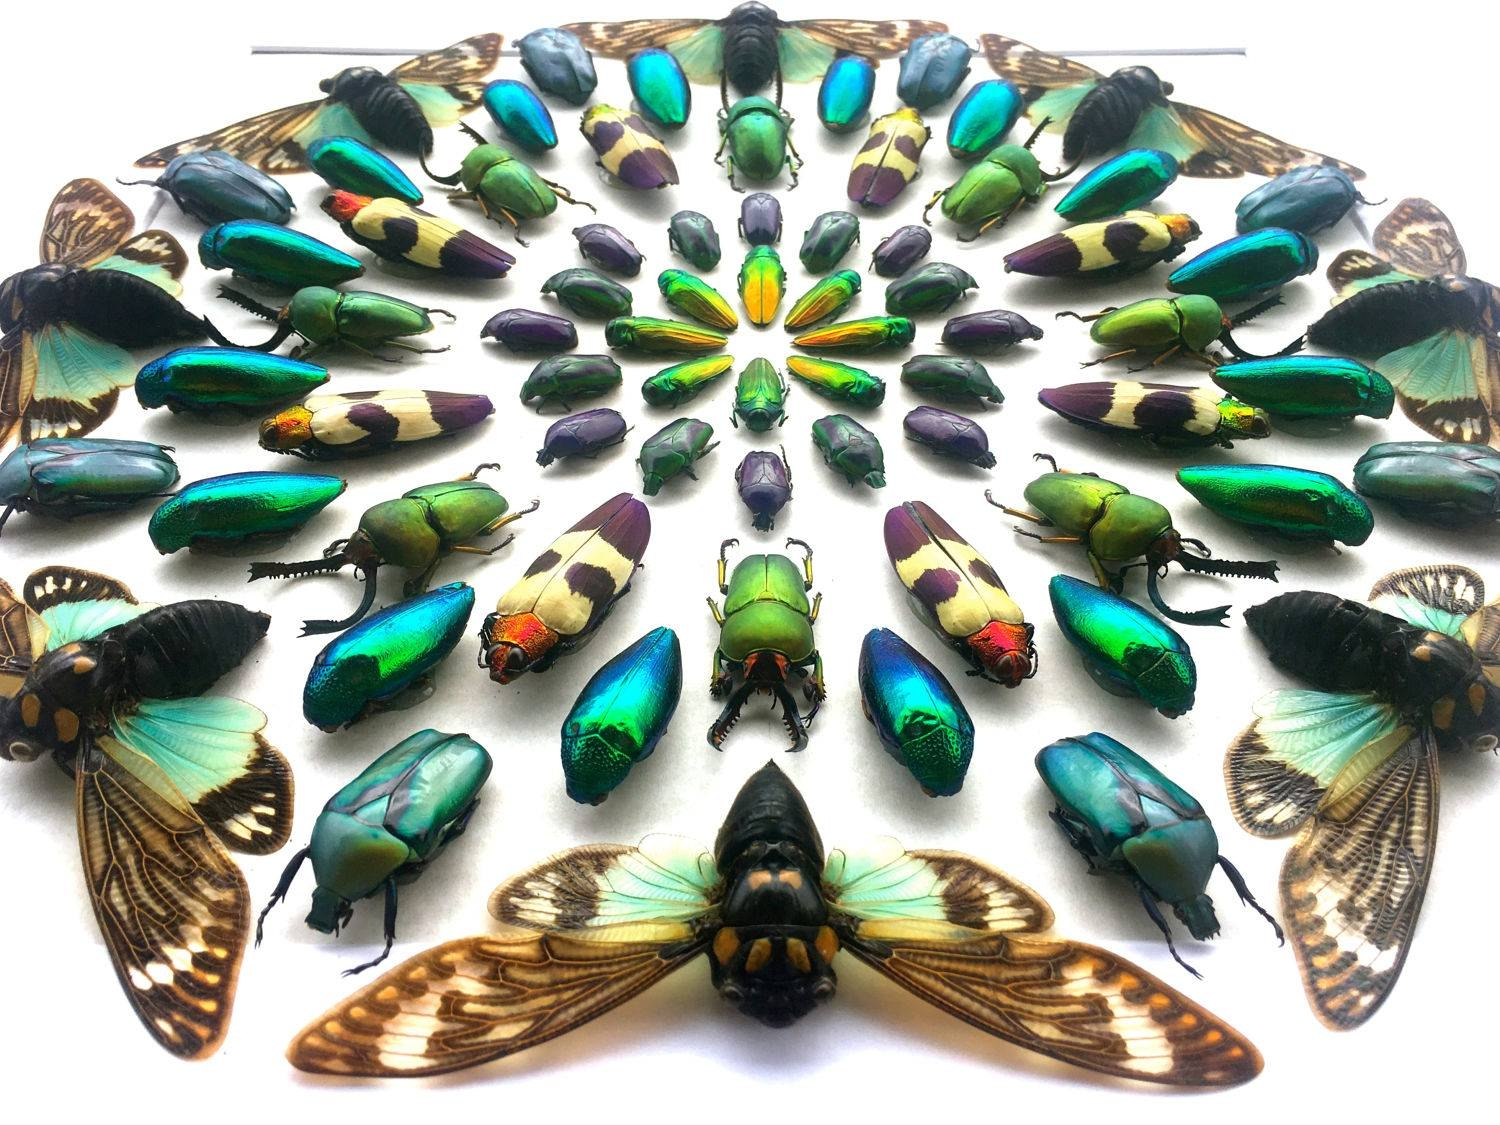 Shadow Box Art Real Taxidermy 3d Wall Art Large Artwork Cool For Most Current Insect Wall Art (View 6 of 30)